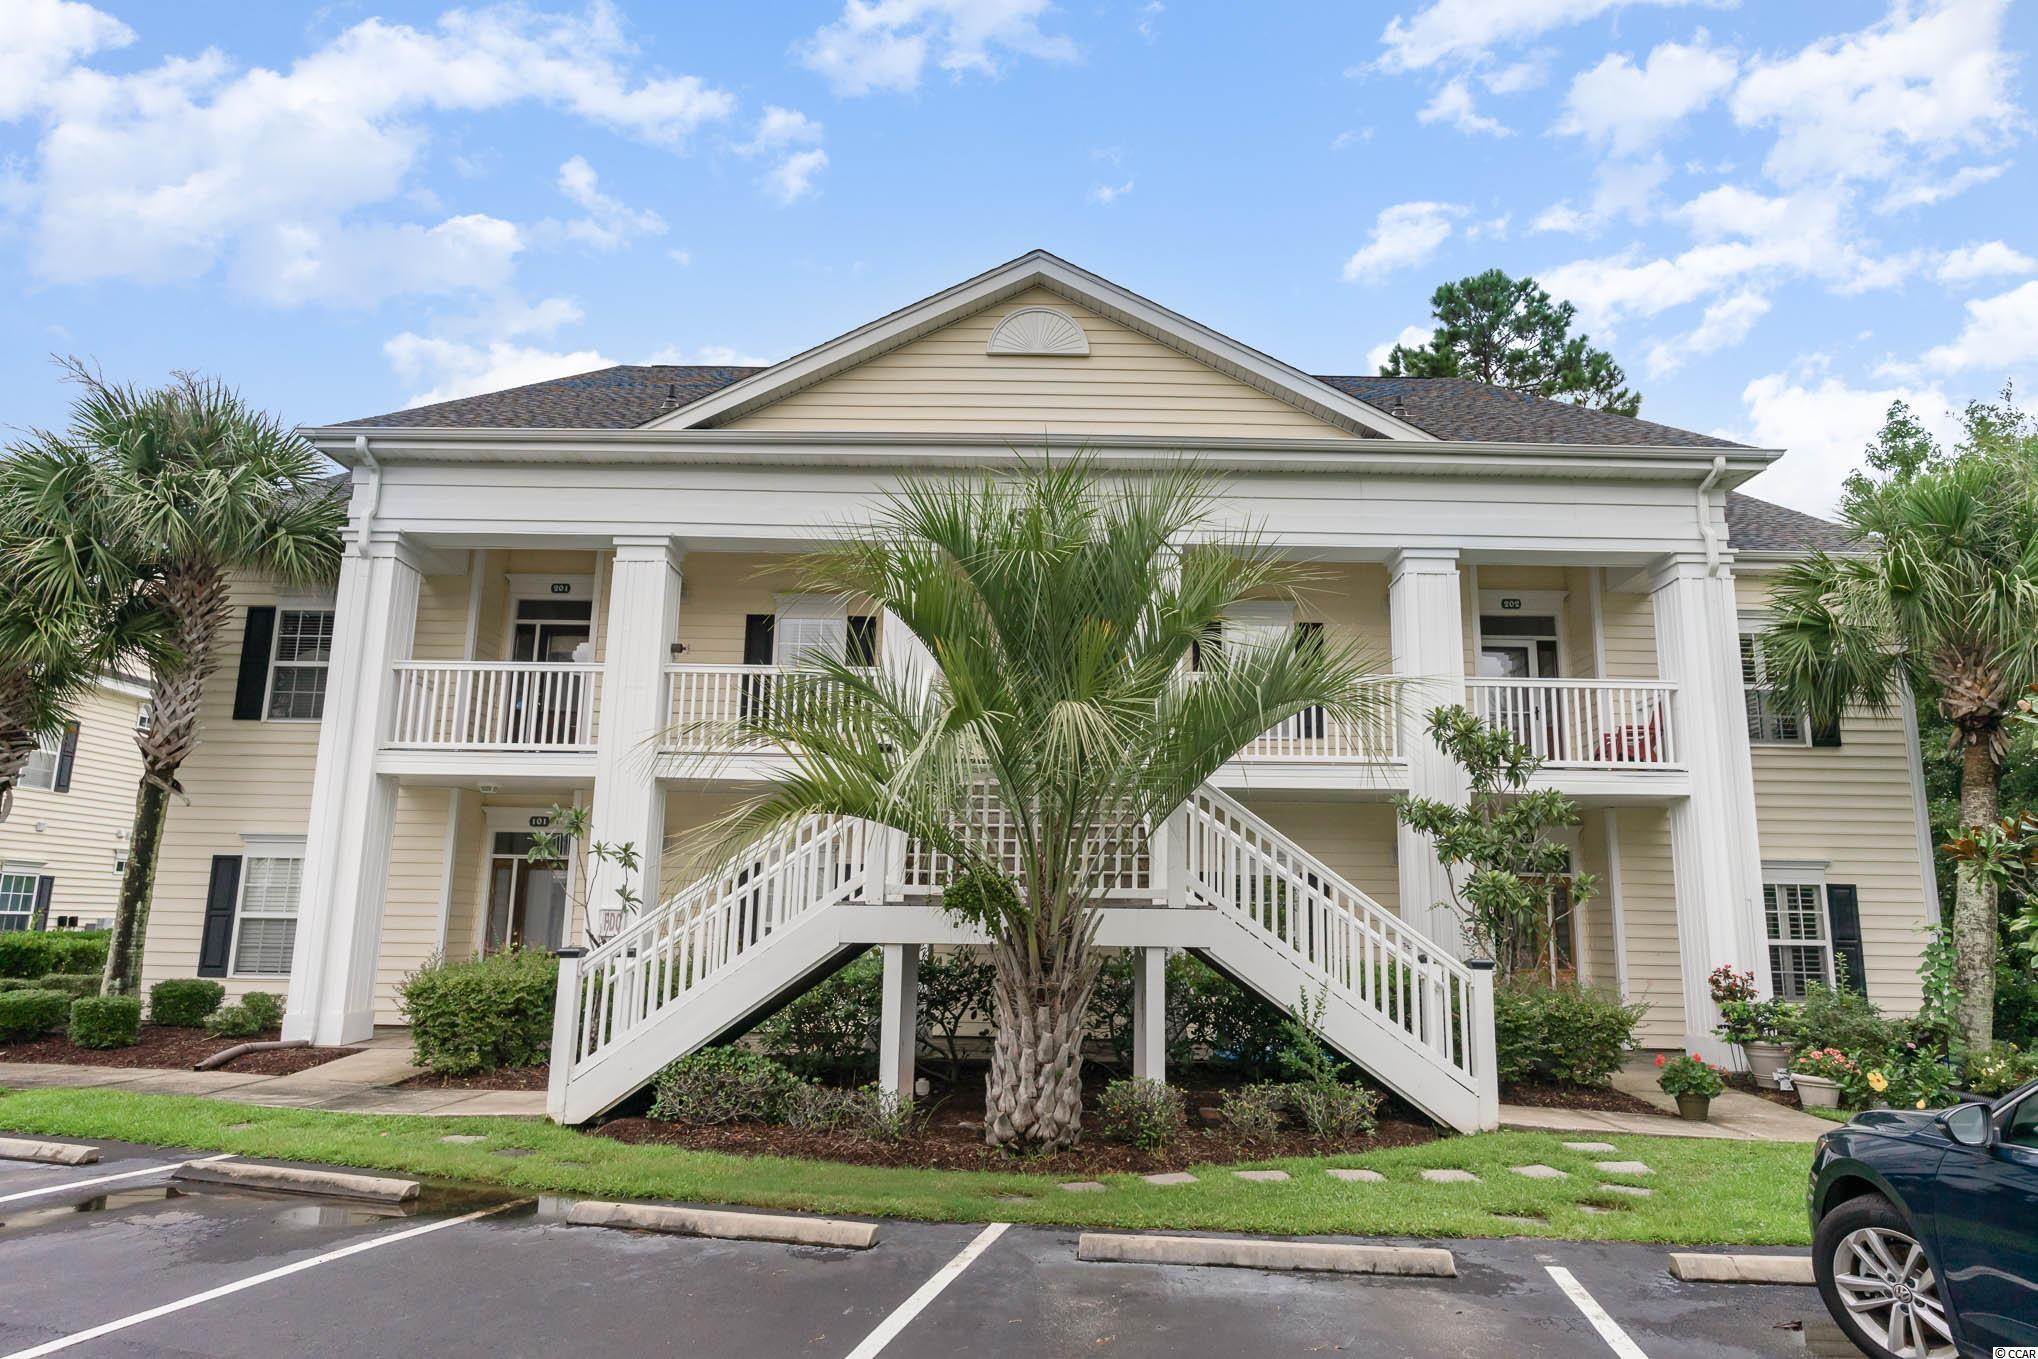 This stunning condo in the Villas just hit the market in Murrells Inlet! Located in the highly-coveted neighborhood of the International Club, this beautiful home features 4 bedrooms, 3 bathrooms and 2,374 heated square feet of living space! This mostly furnished unit has two floors of living space with 3 bedrooms on the main floor and a full bedroom, loft, and bathroom on the second level. The beautifully decorated home features vaulted and trey ceilings throughout, granite countertops and stainless appliances in the kitchen. This home also boasts a wonderful outdoor screened in patio, great for entertaining or a relaxing in the evening with a good book. Overlooking the pond with a lighted fountain tops off the experience! Square footage is approximate and not guaranteed. Buyer is responsible for verification.